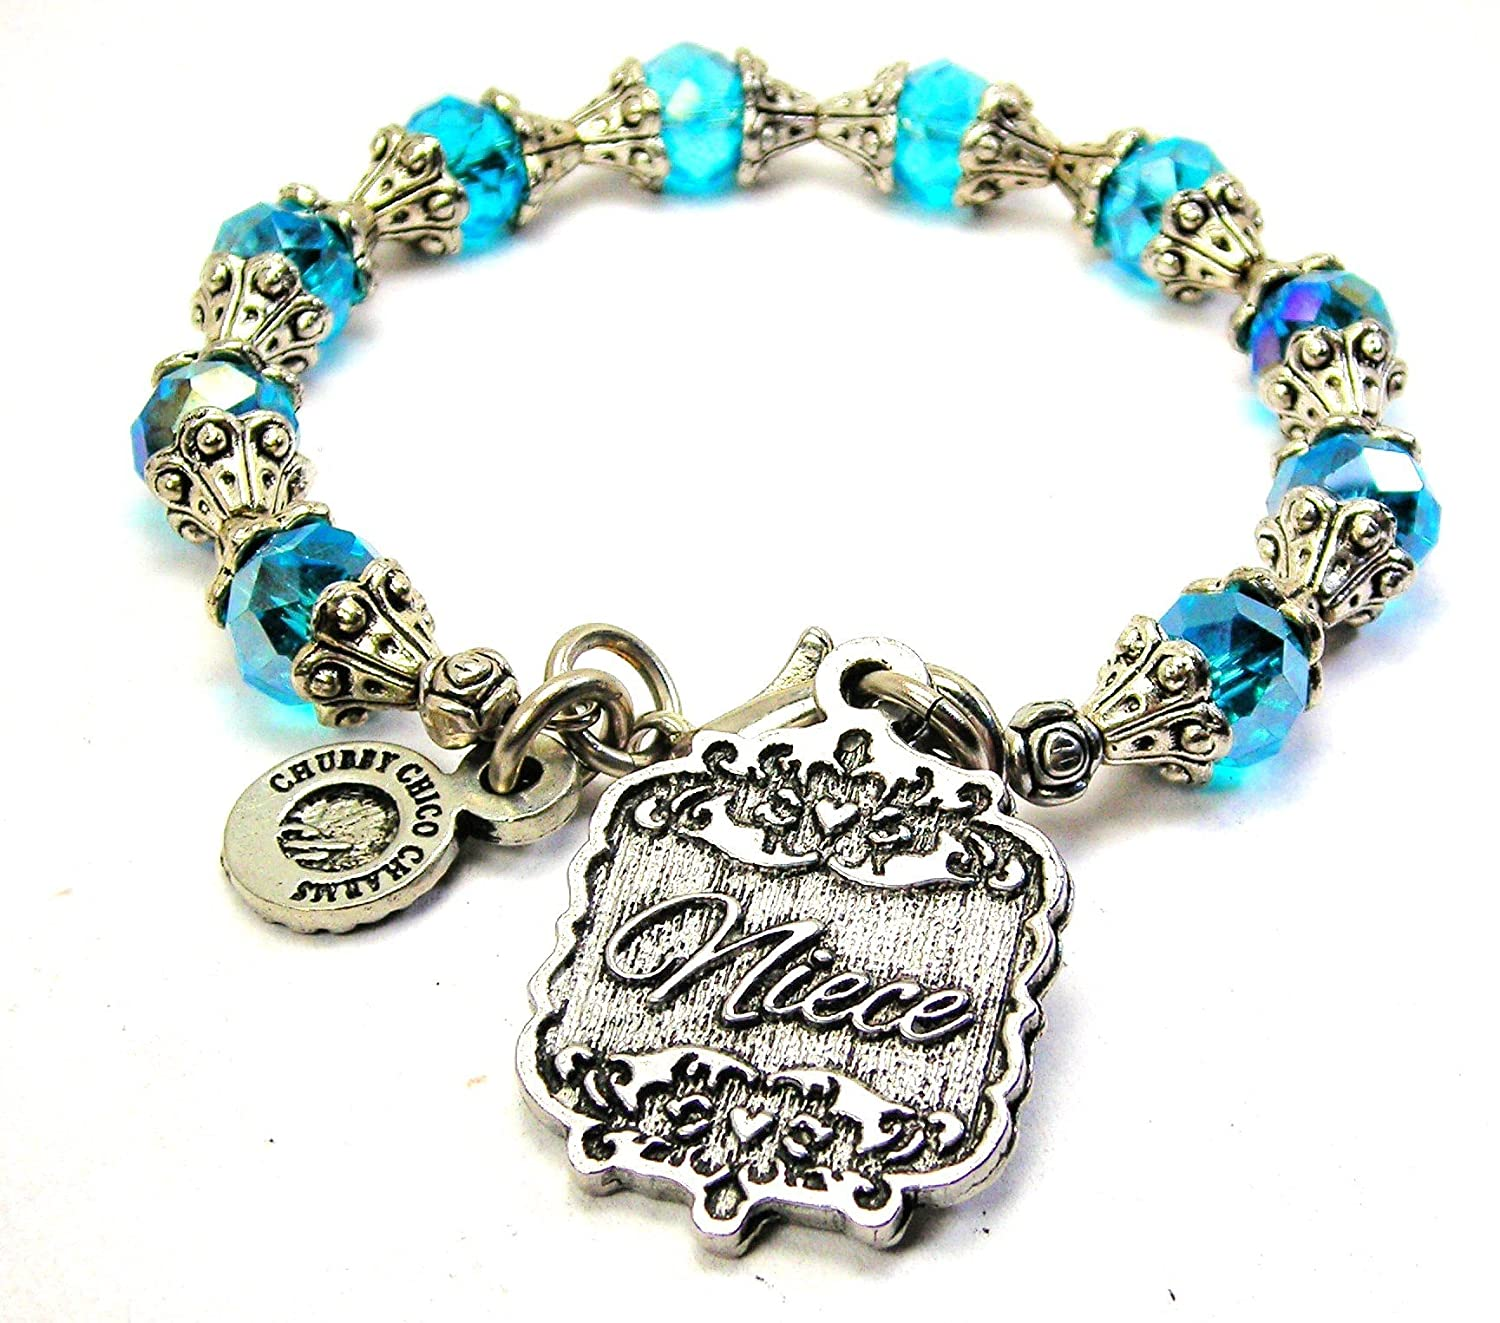 Chubby Chico Charms Niece Victorian Scroll Capped Crystal Bracelet in Aqua Blue